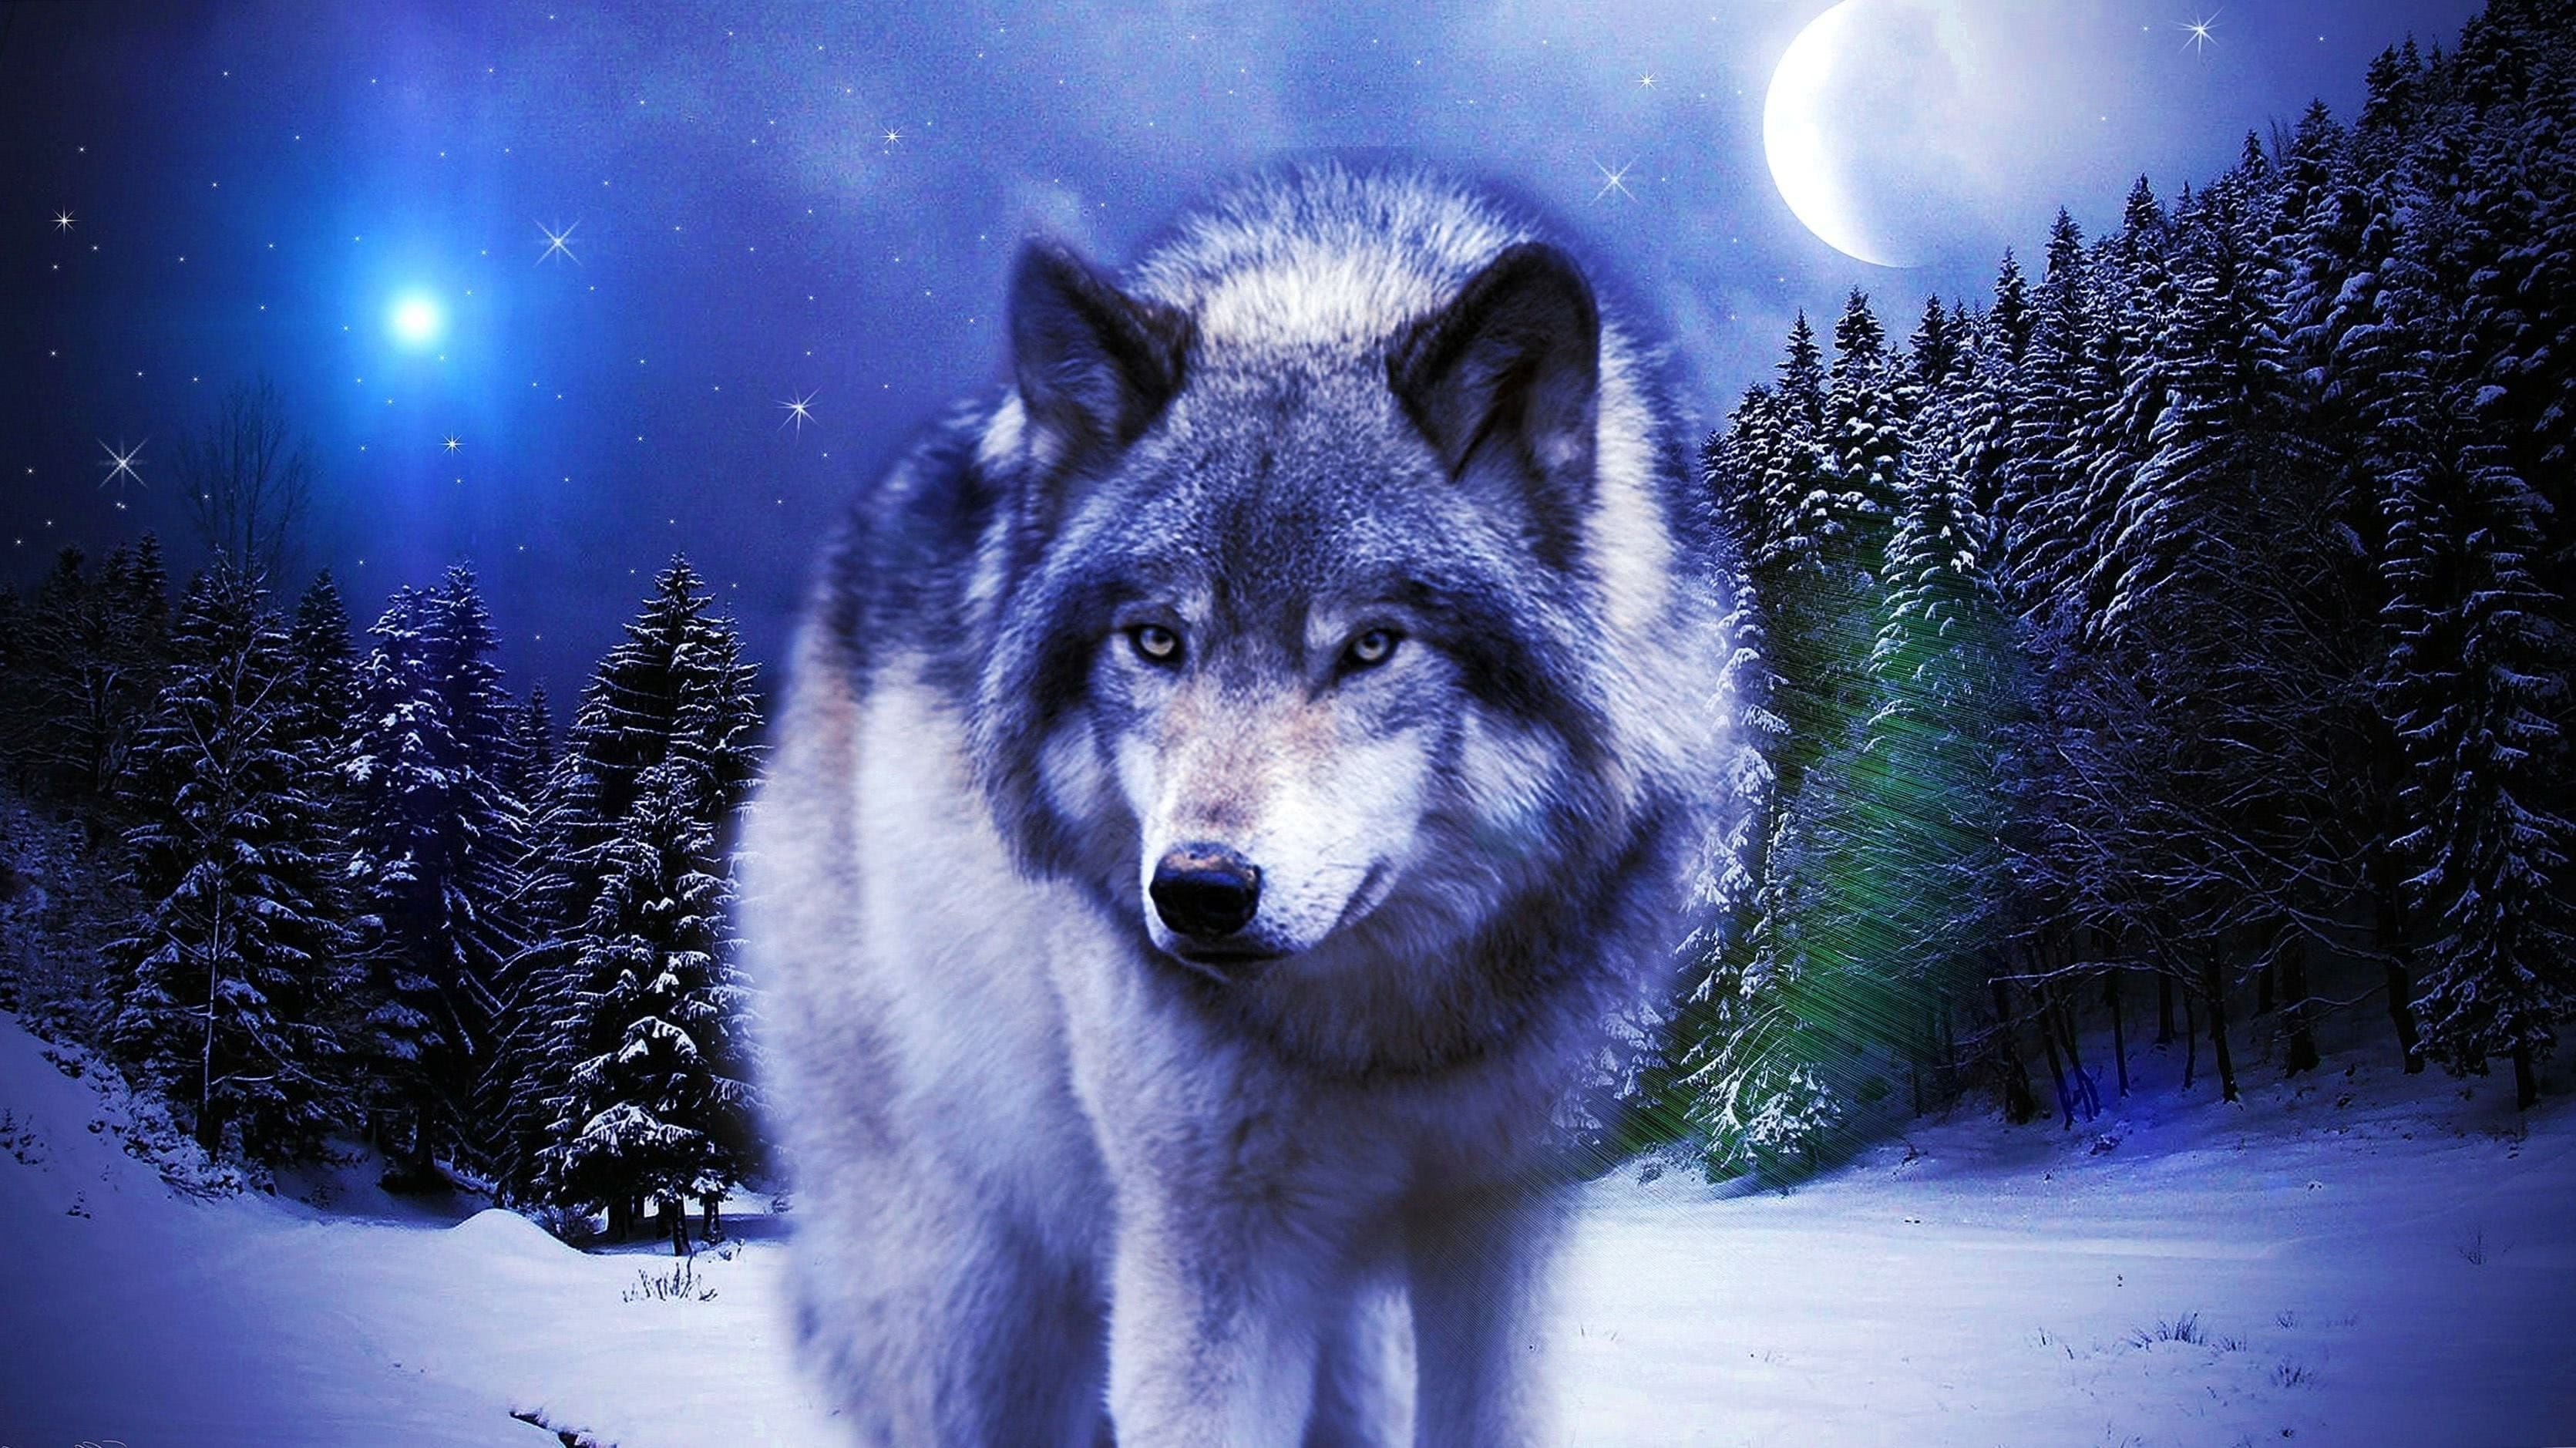 Wolf HD Wallpaper Images